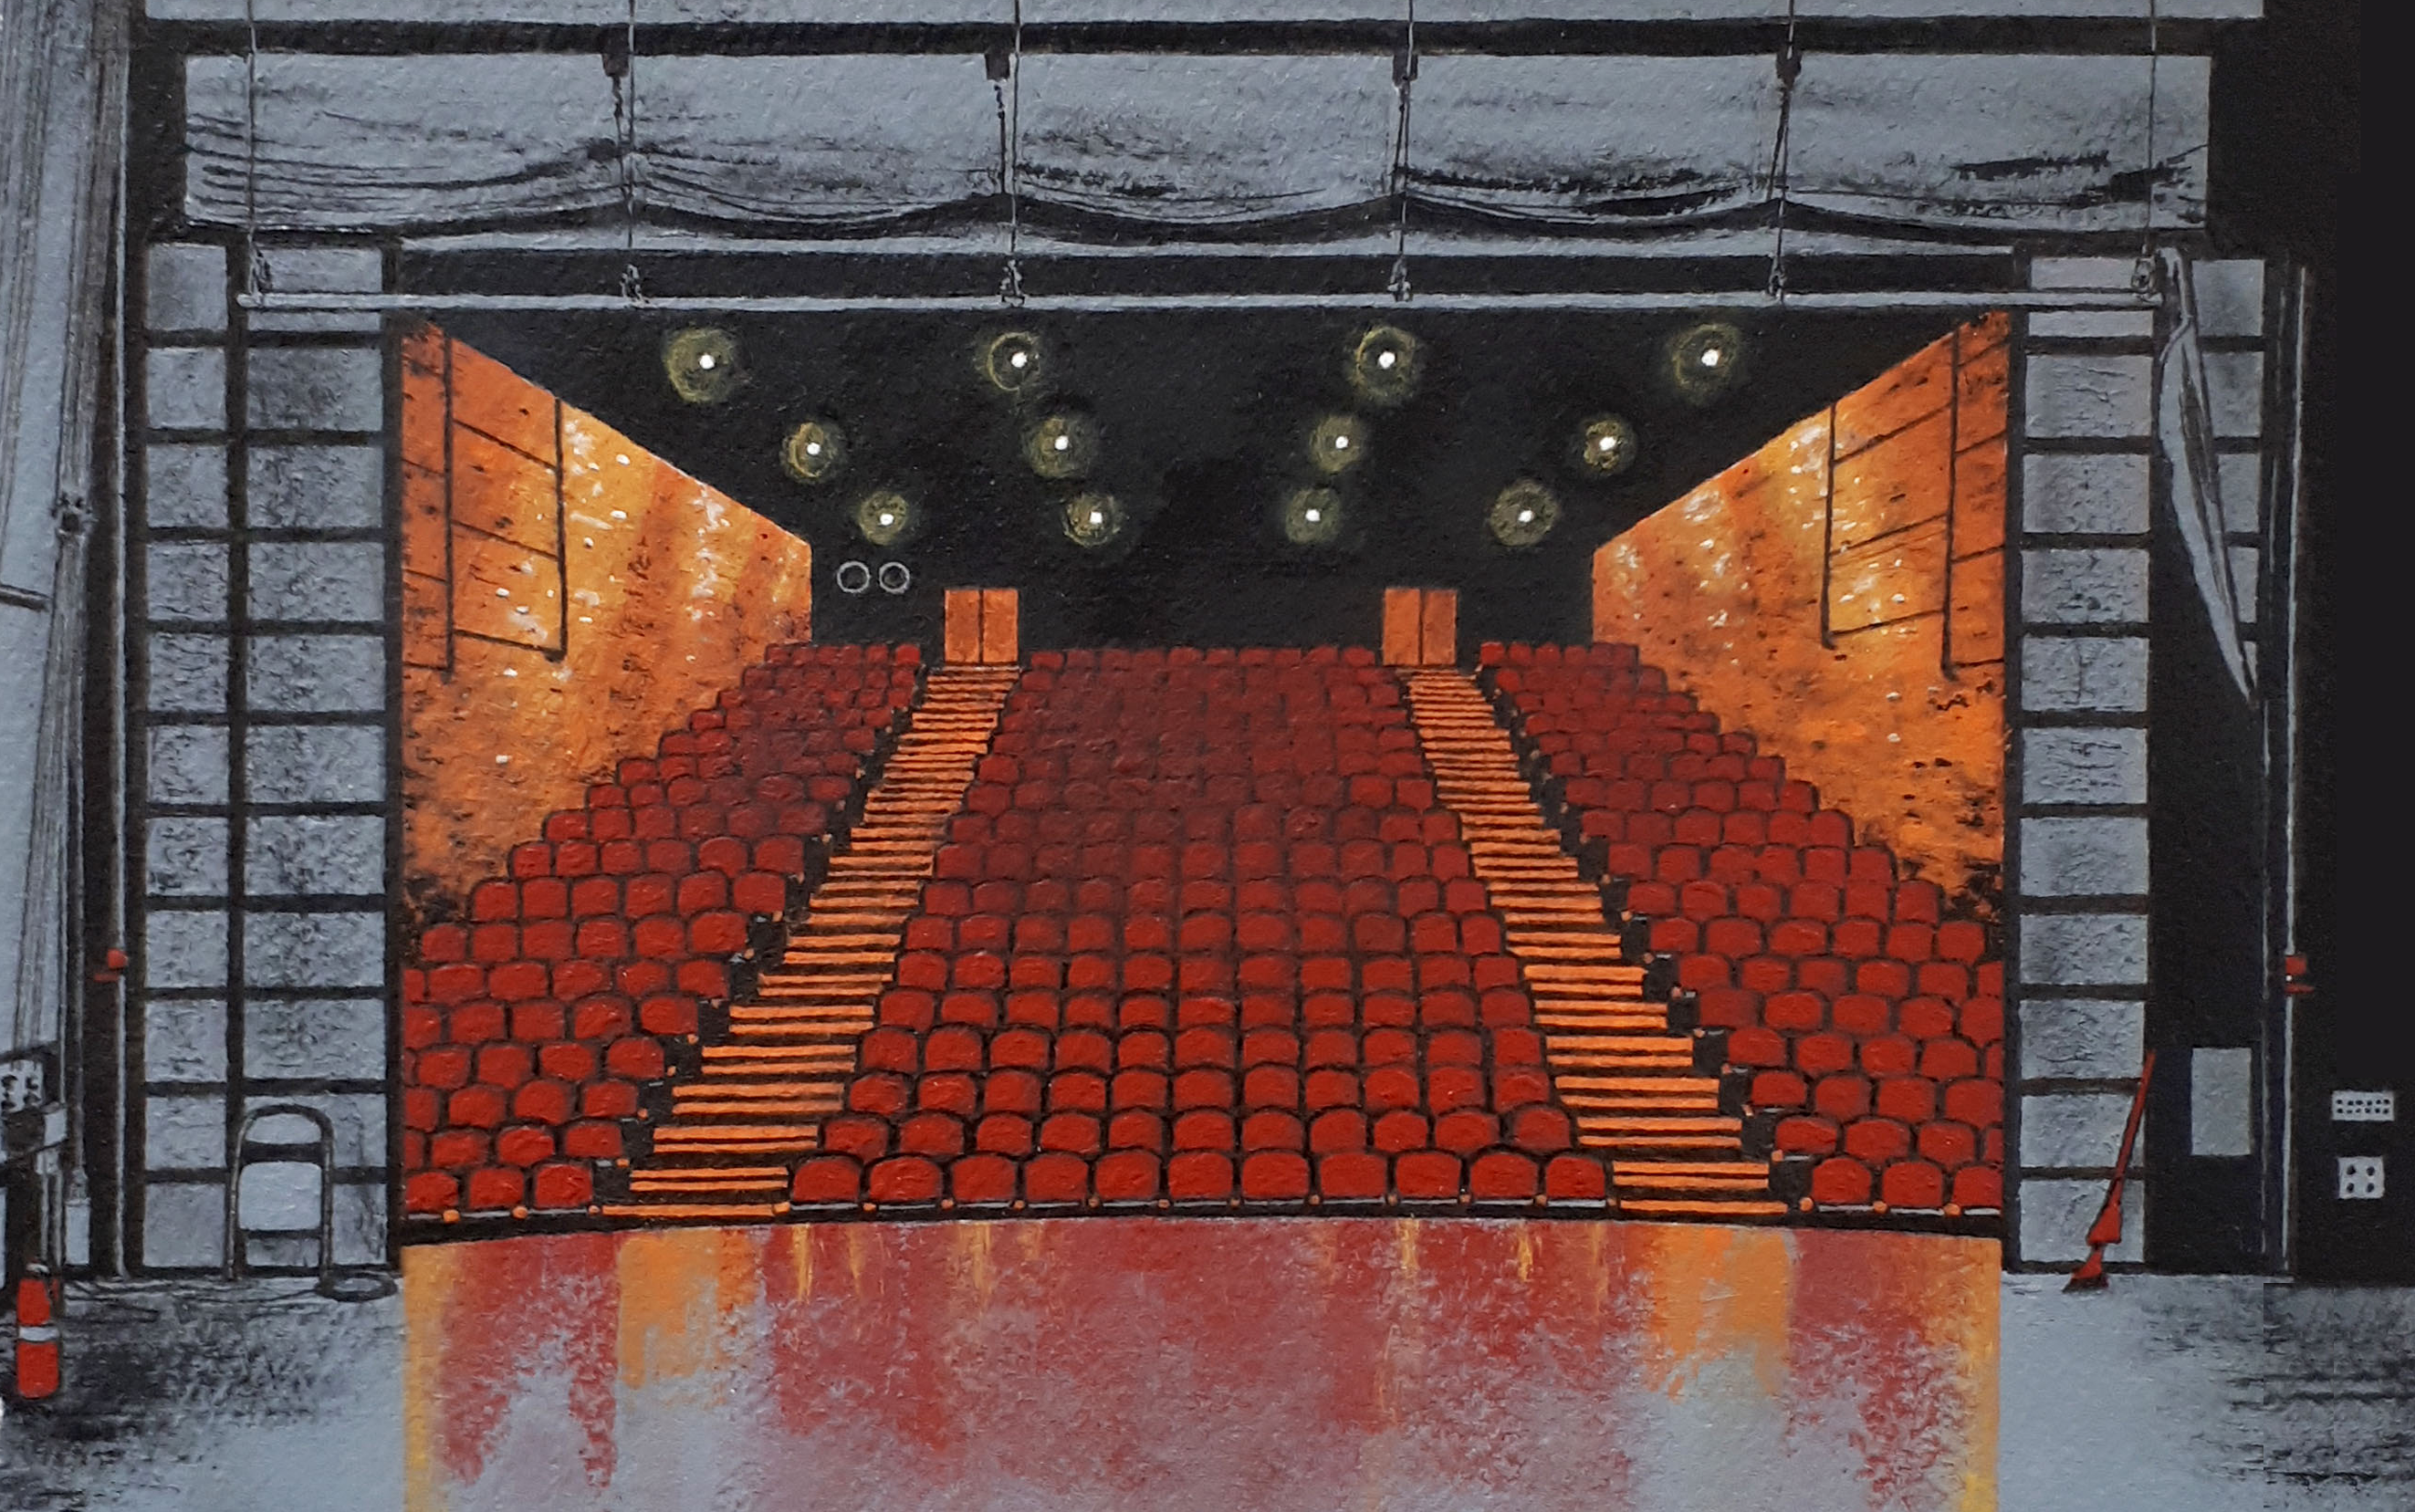 Illustration of an empty theatre from the perspective of standing on stage. THe seats are red and the stage is grey.